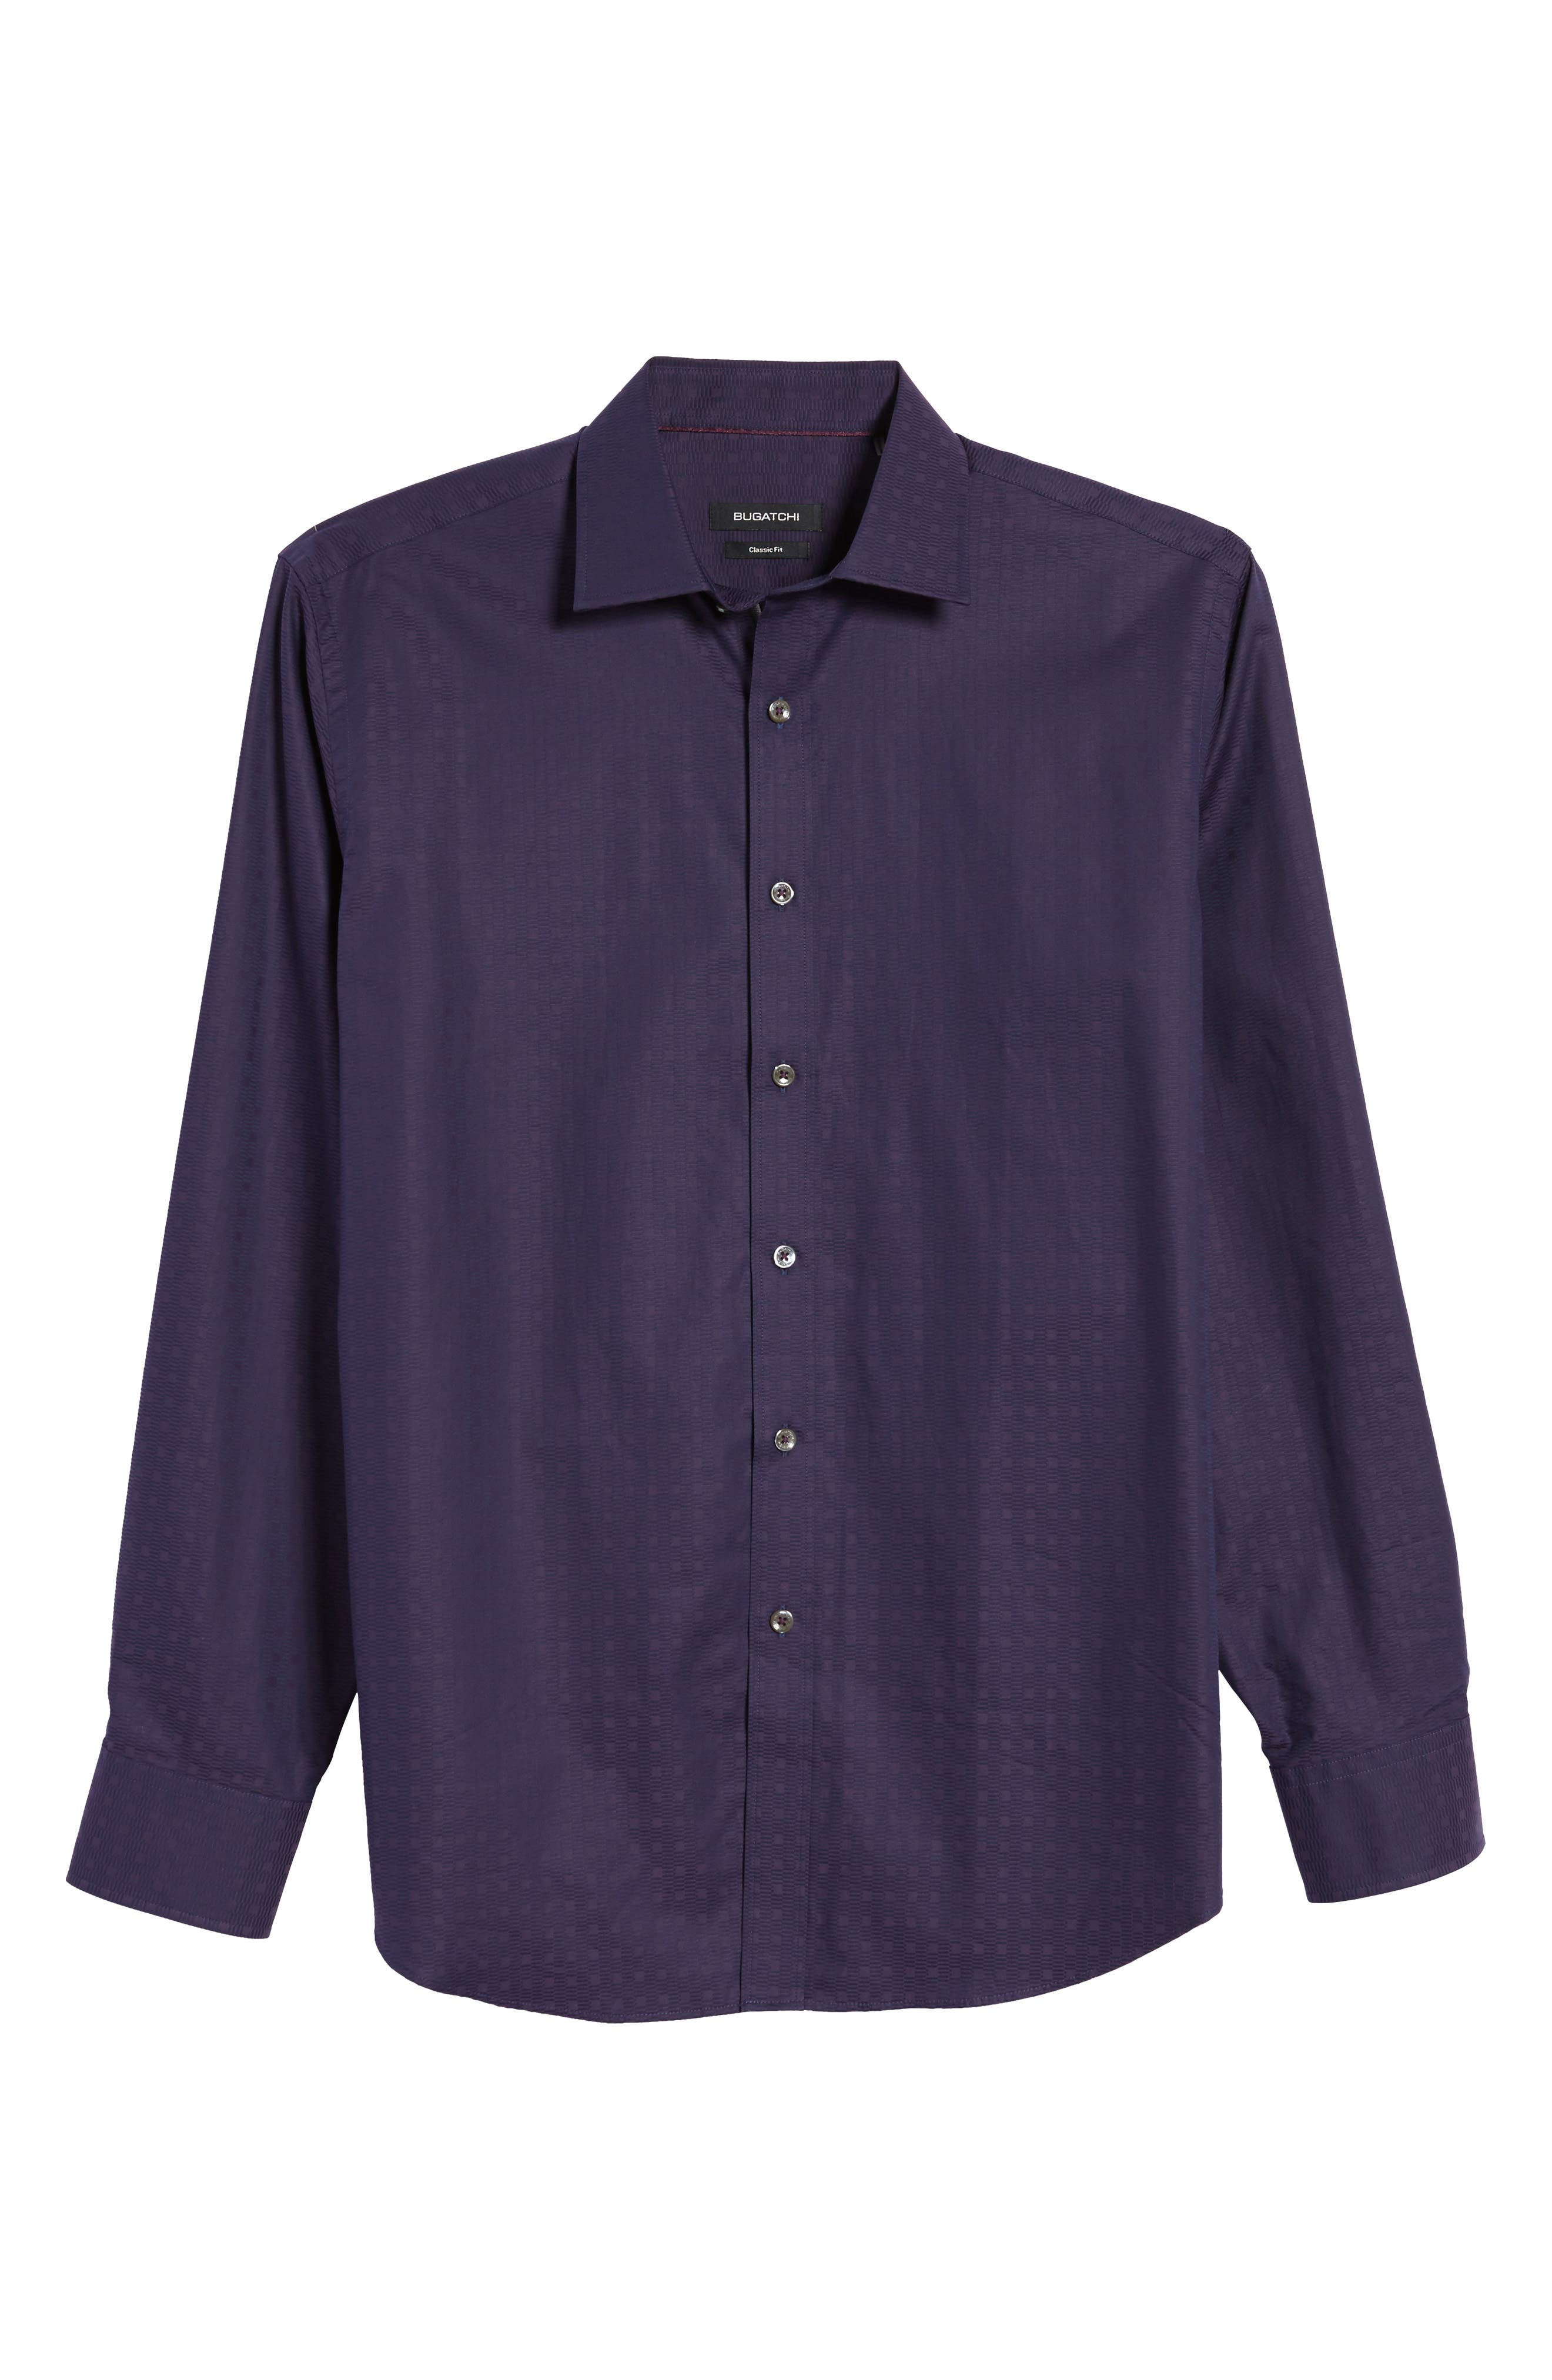 Classic Fit Geo Jacquard Sport Shirt,                             Alternate thumbnail 6, color,                             Plum